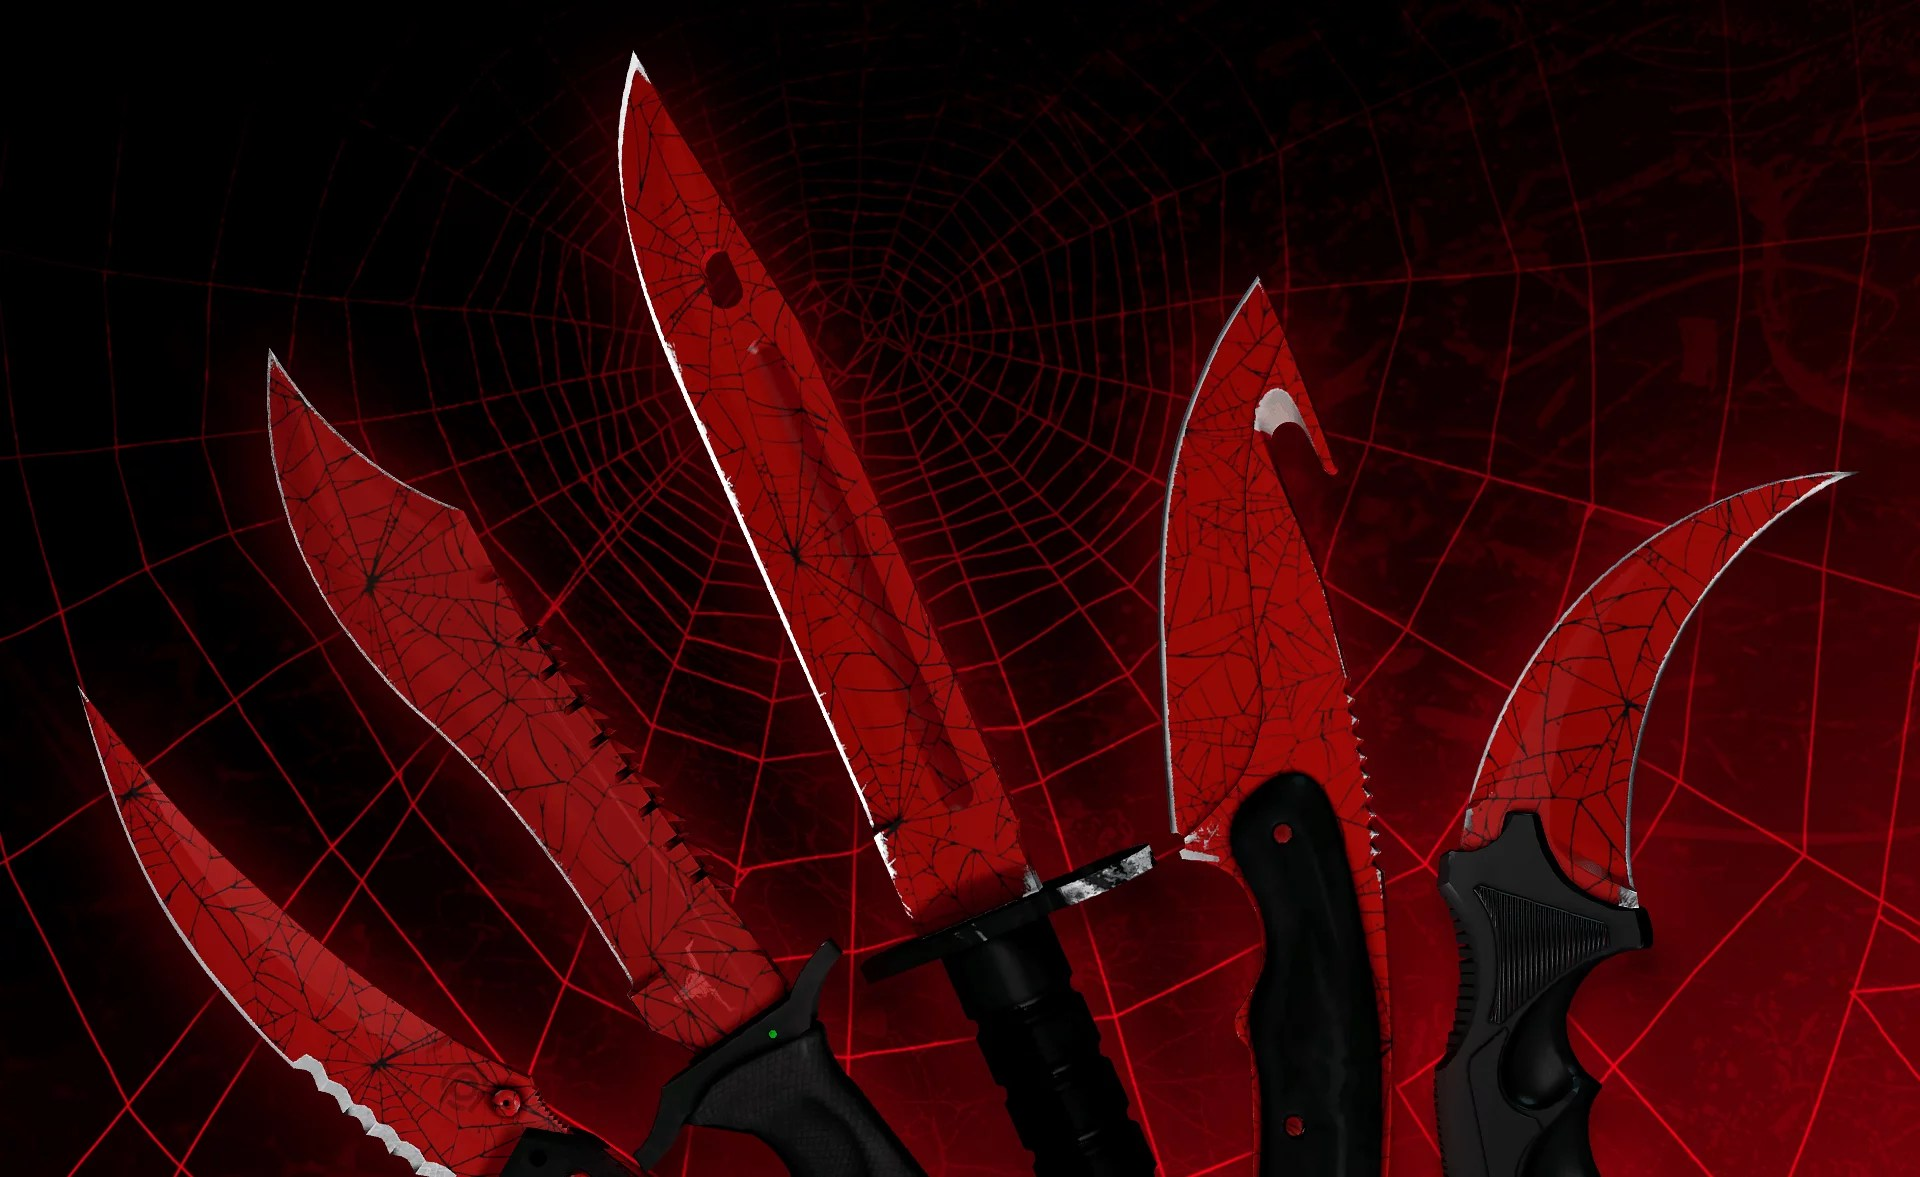 why are knives so